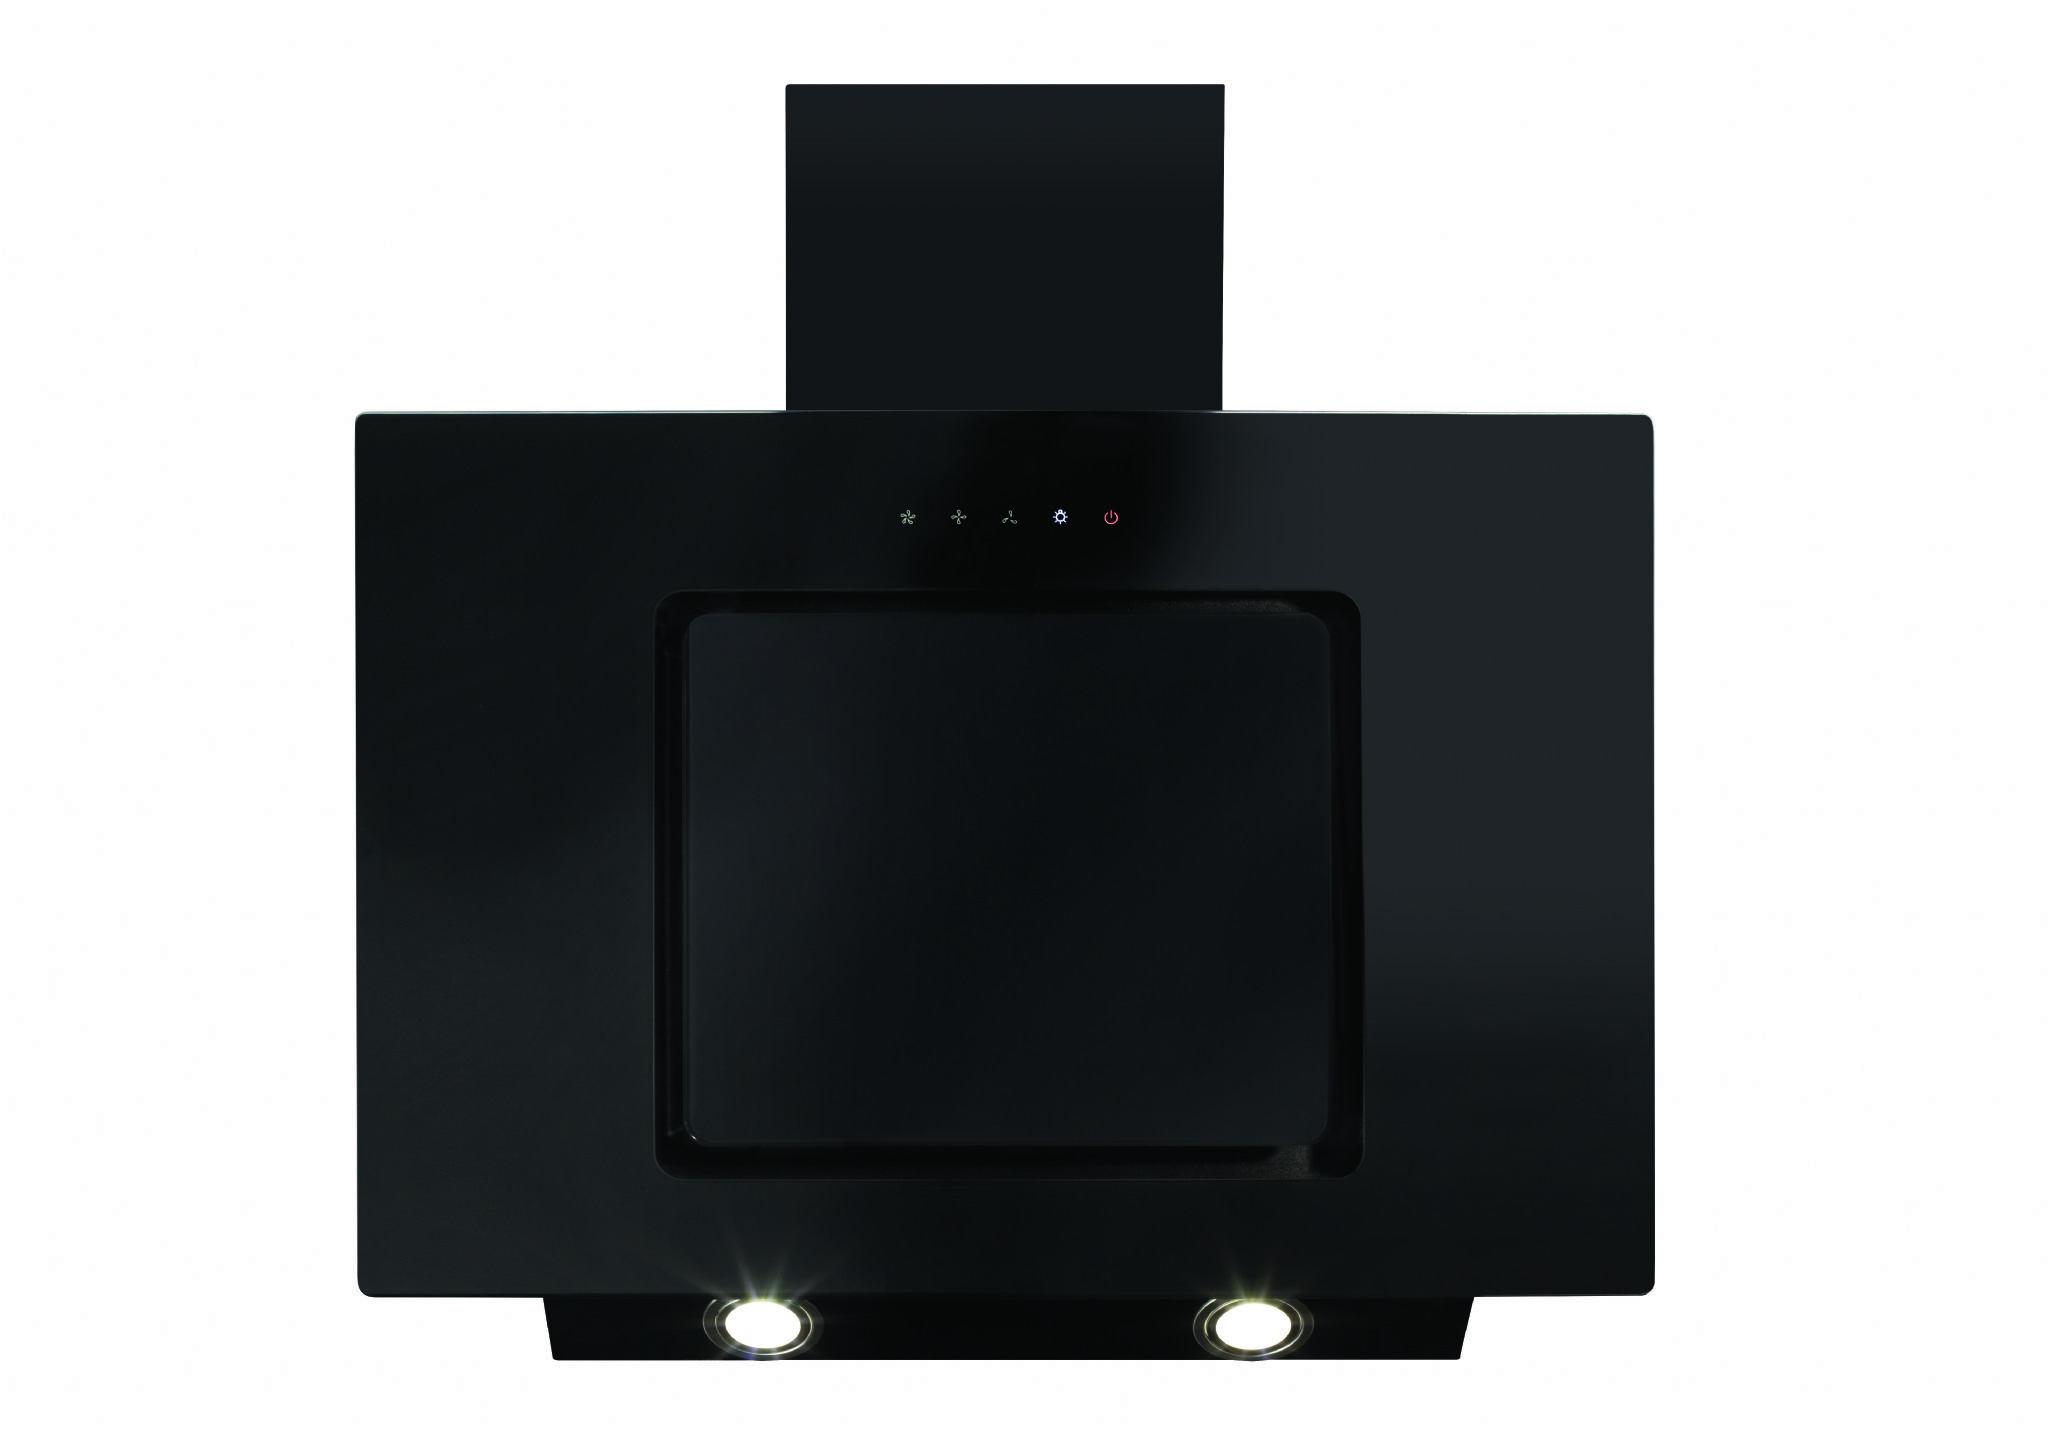 Cda Eva60bl 60cm Angled Extractor In Black 330m3hr